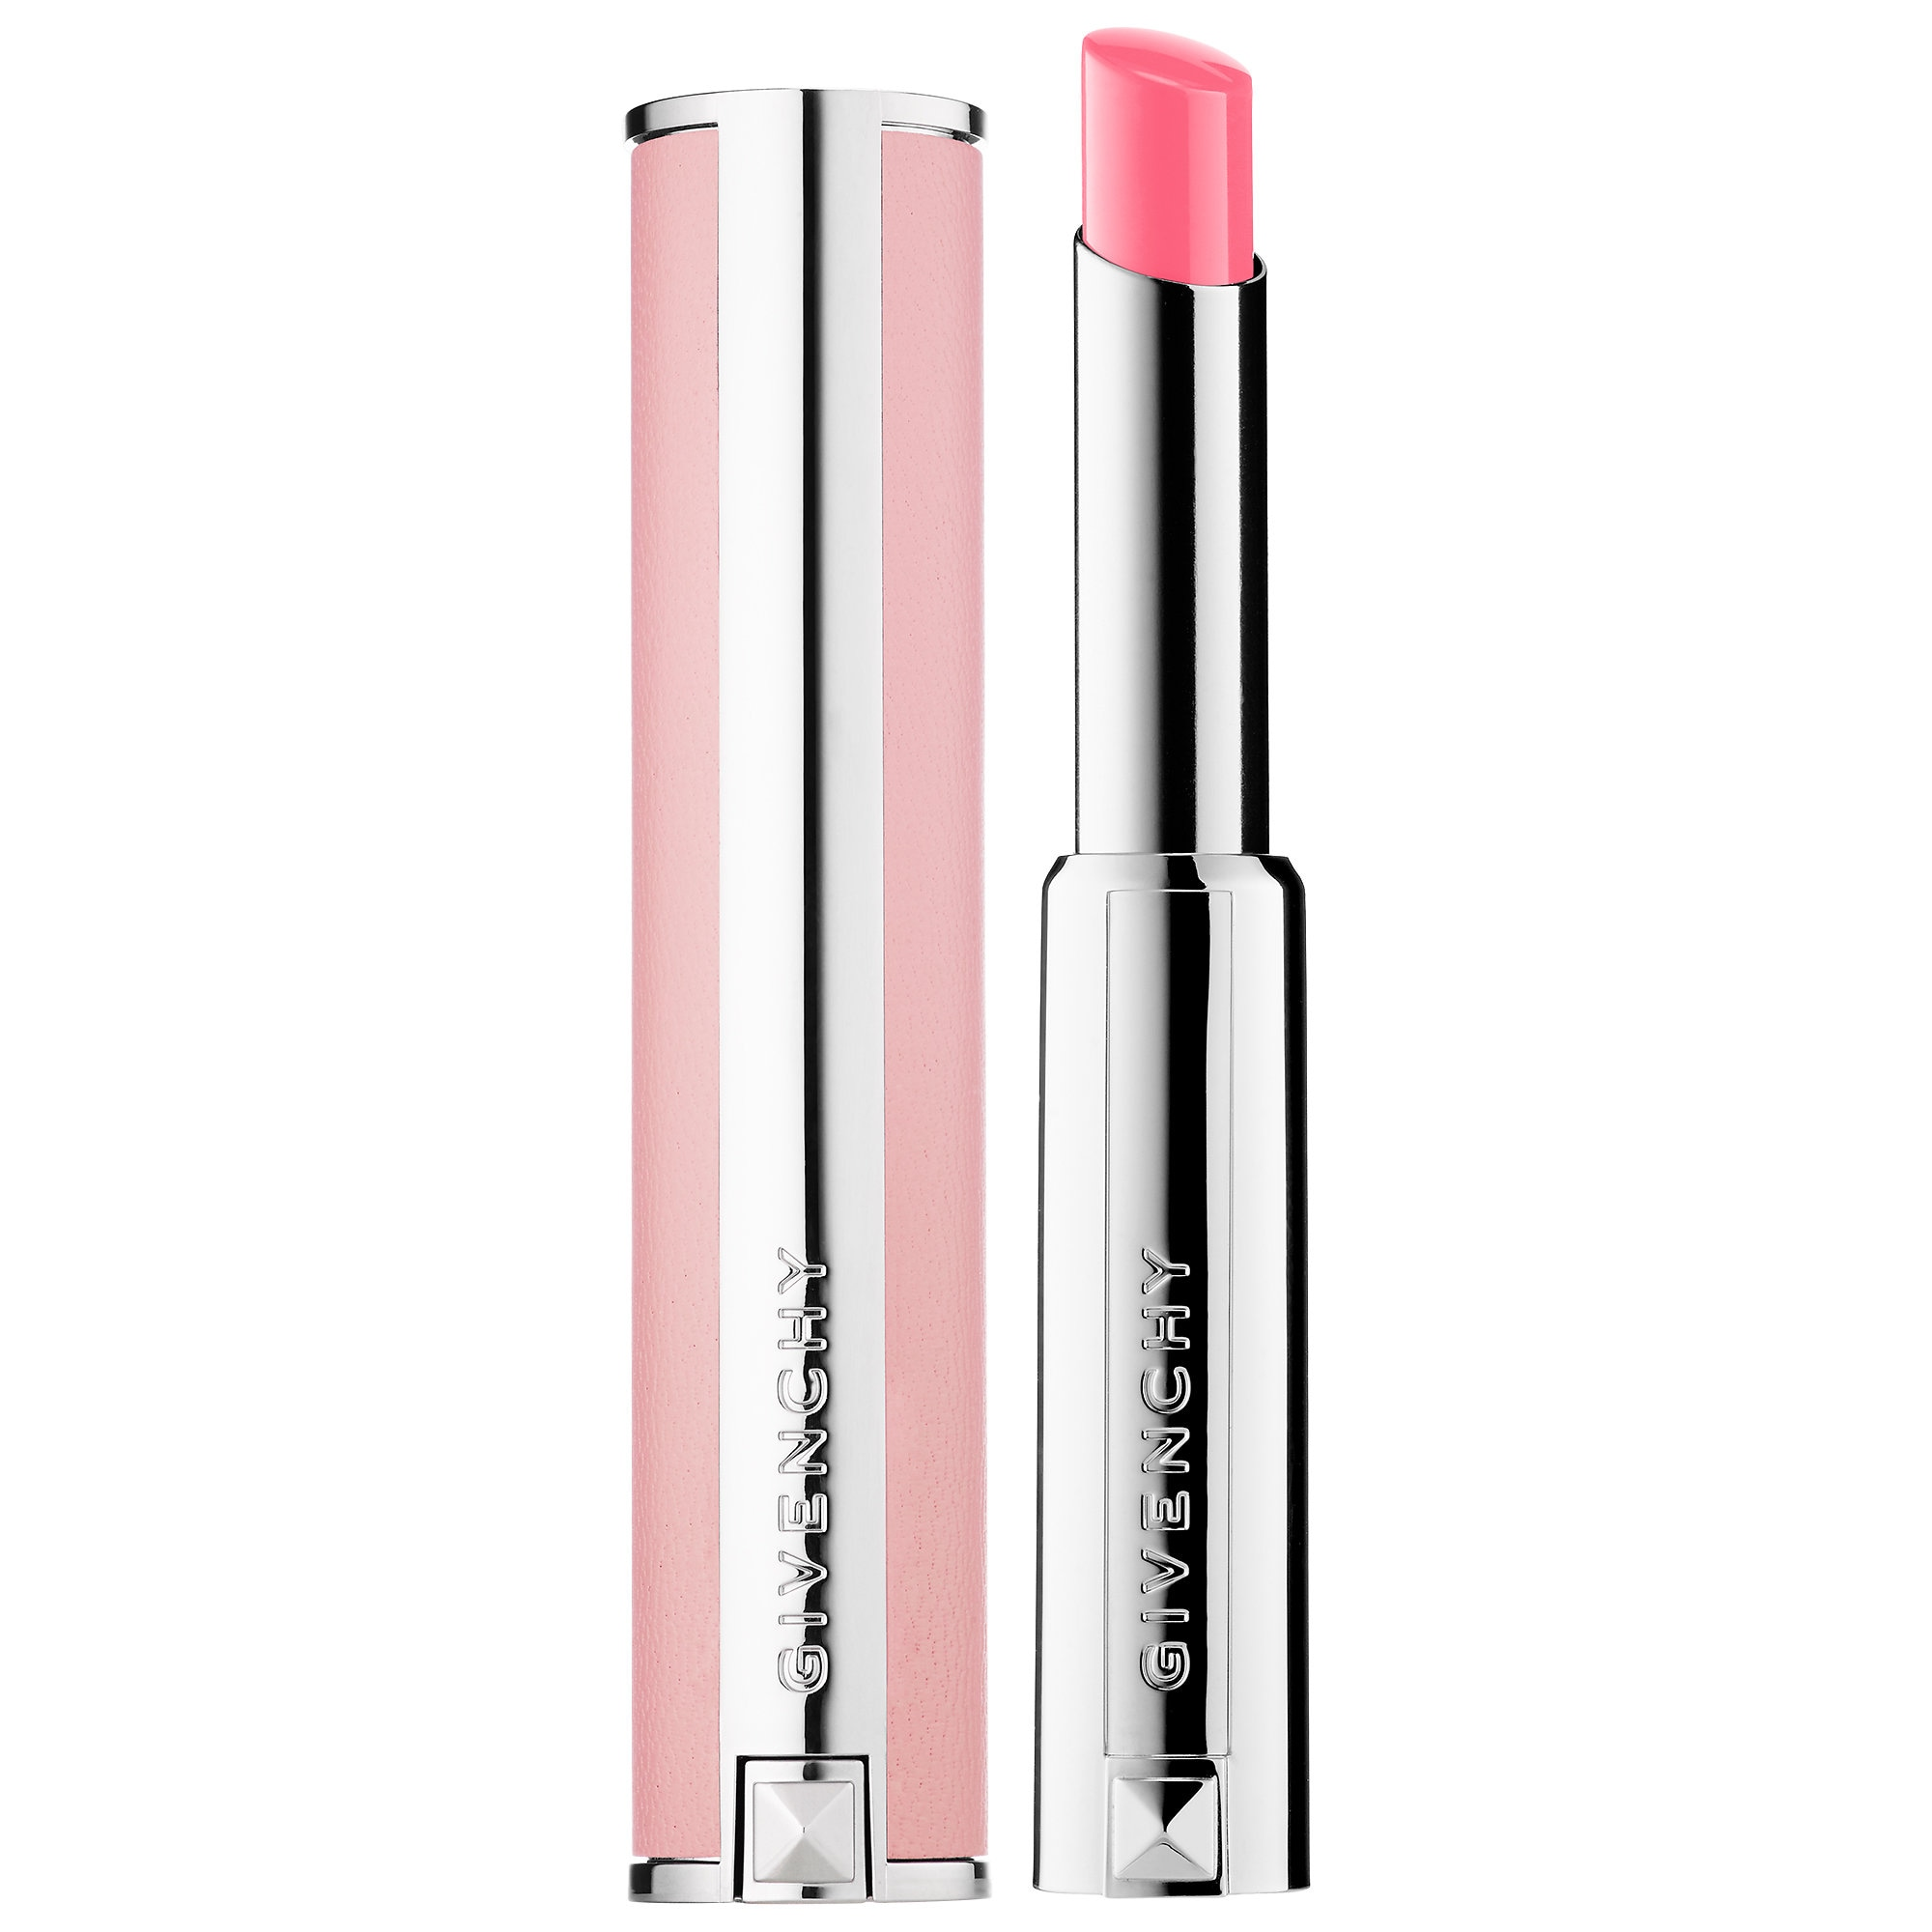 Le Rose Perfecto Color Lip Balm - 201 Timeless Pink